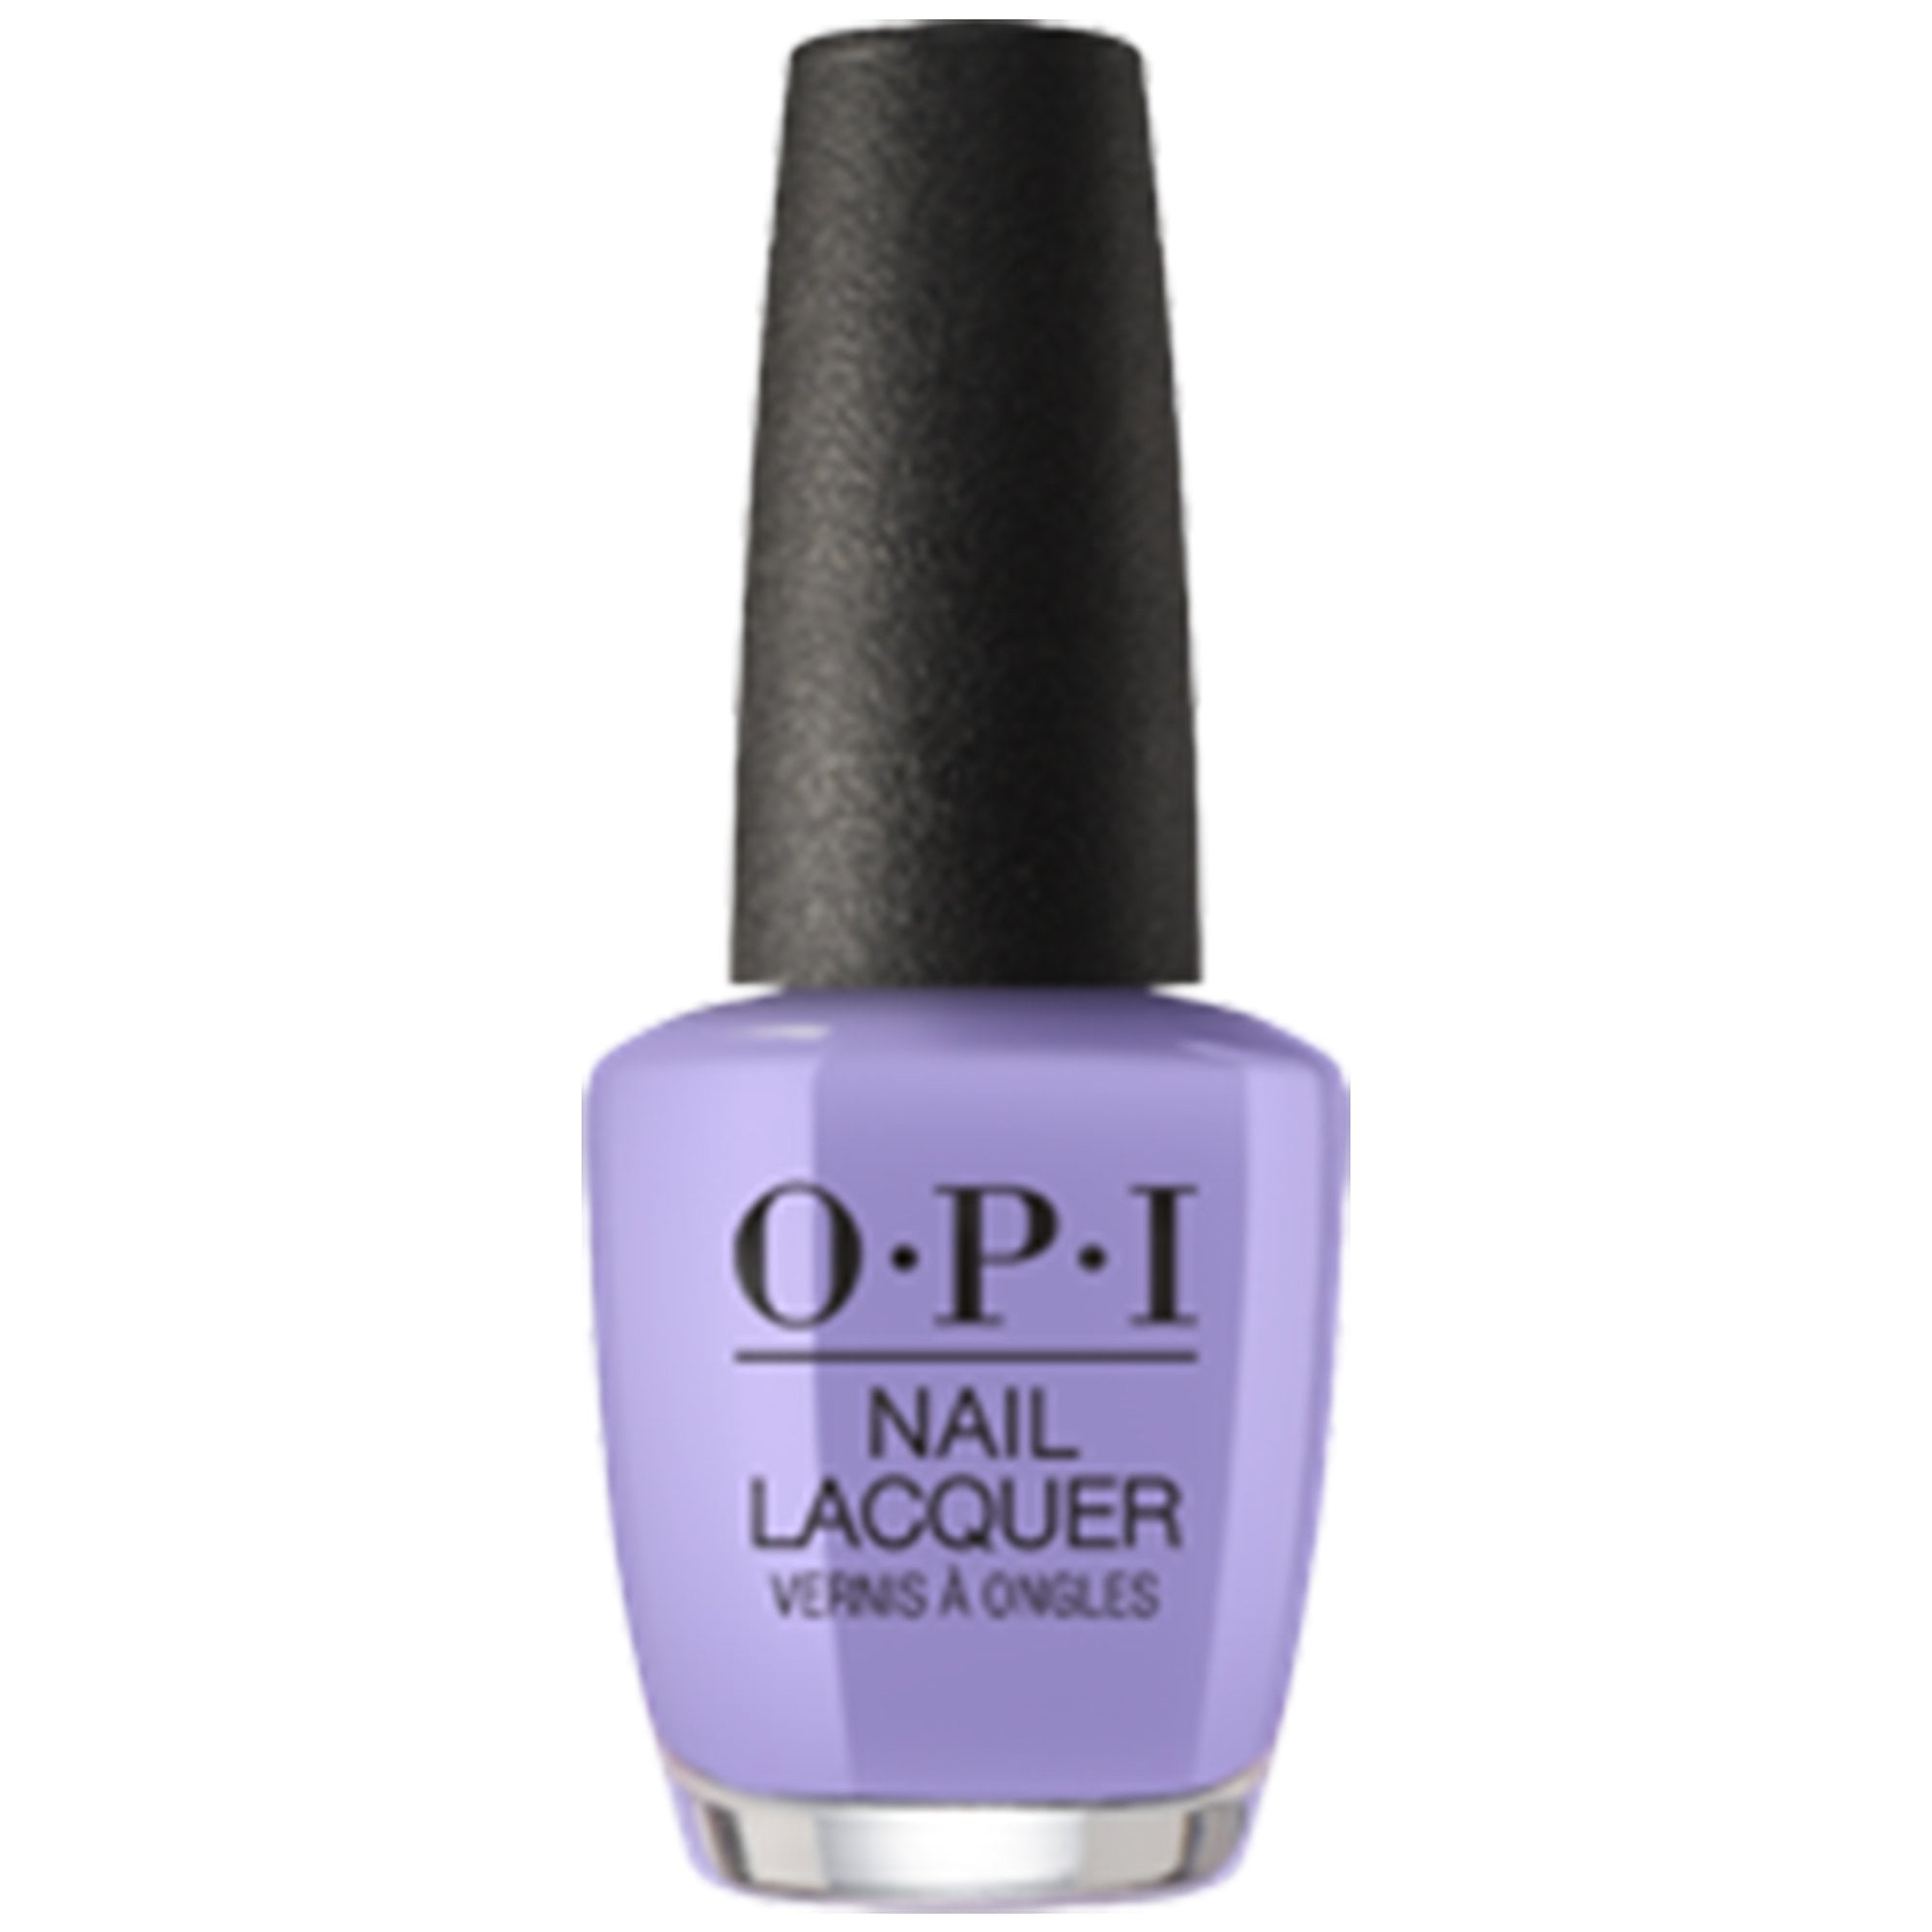 Don't Toot My Flute-OPI Nail Lacquer-UK-Wholesaler-Supplier-queenofnailscouk